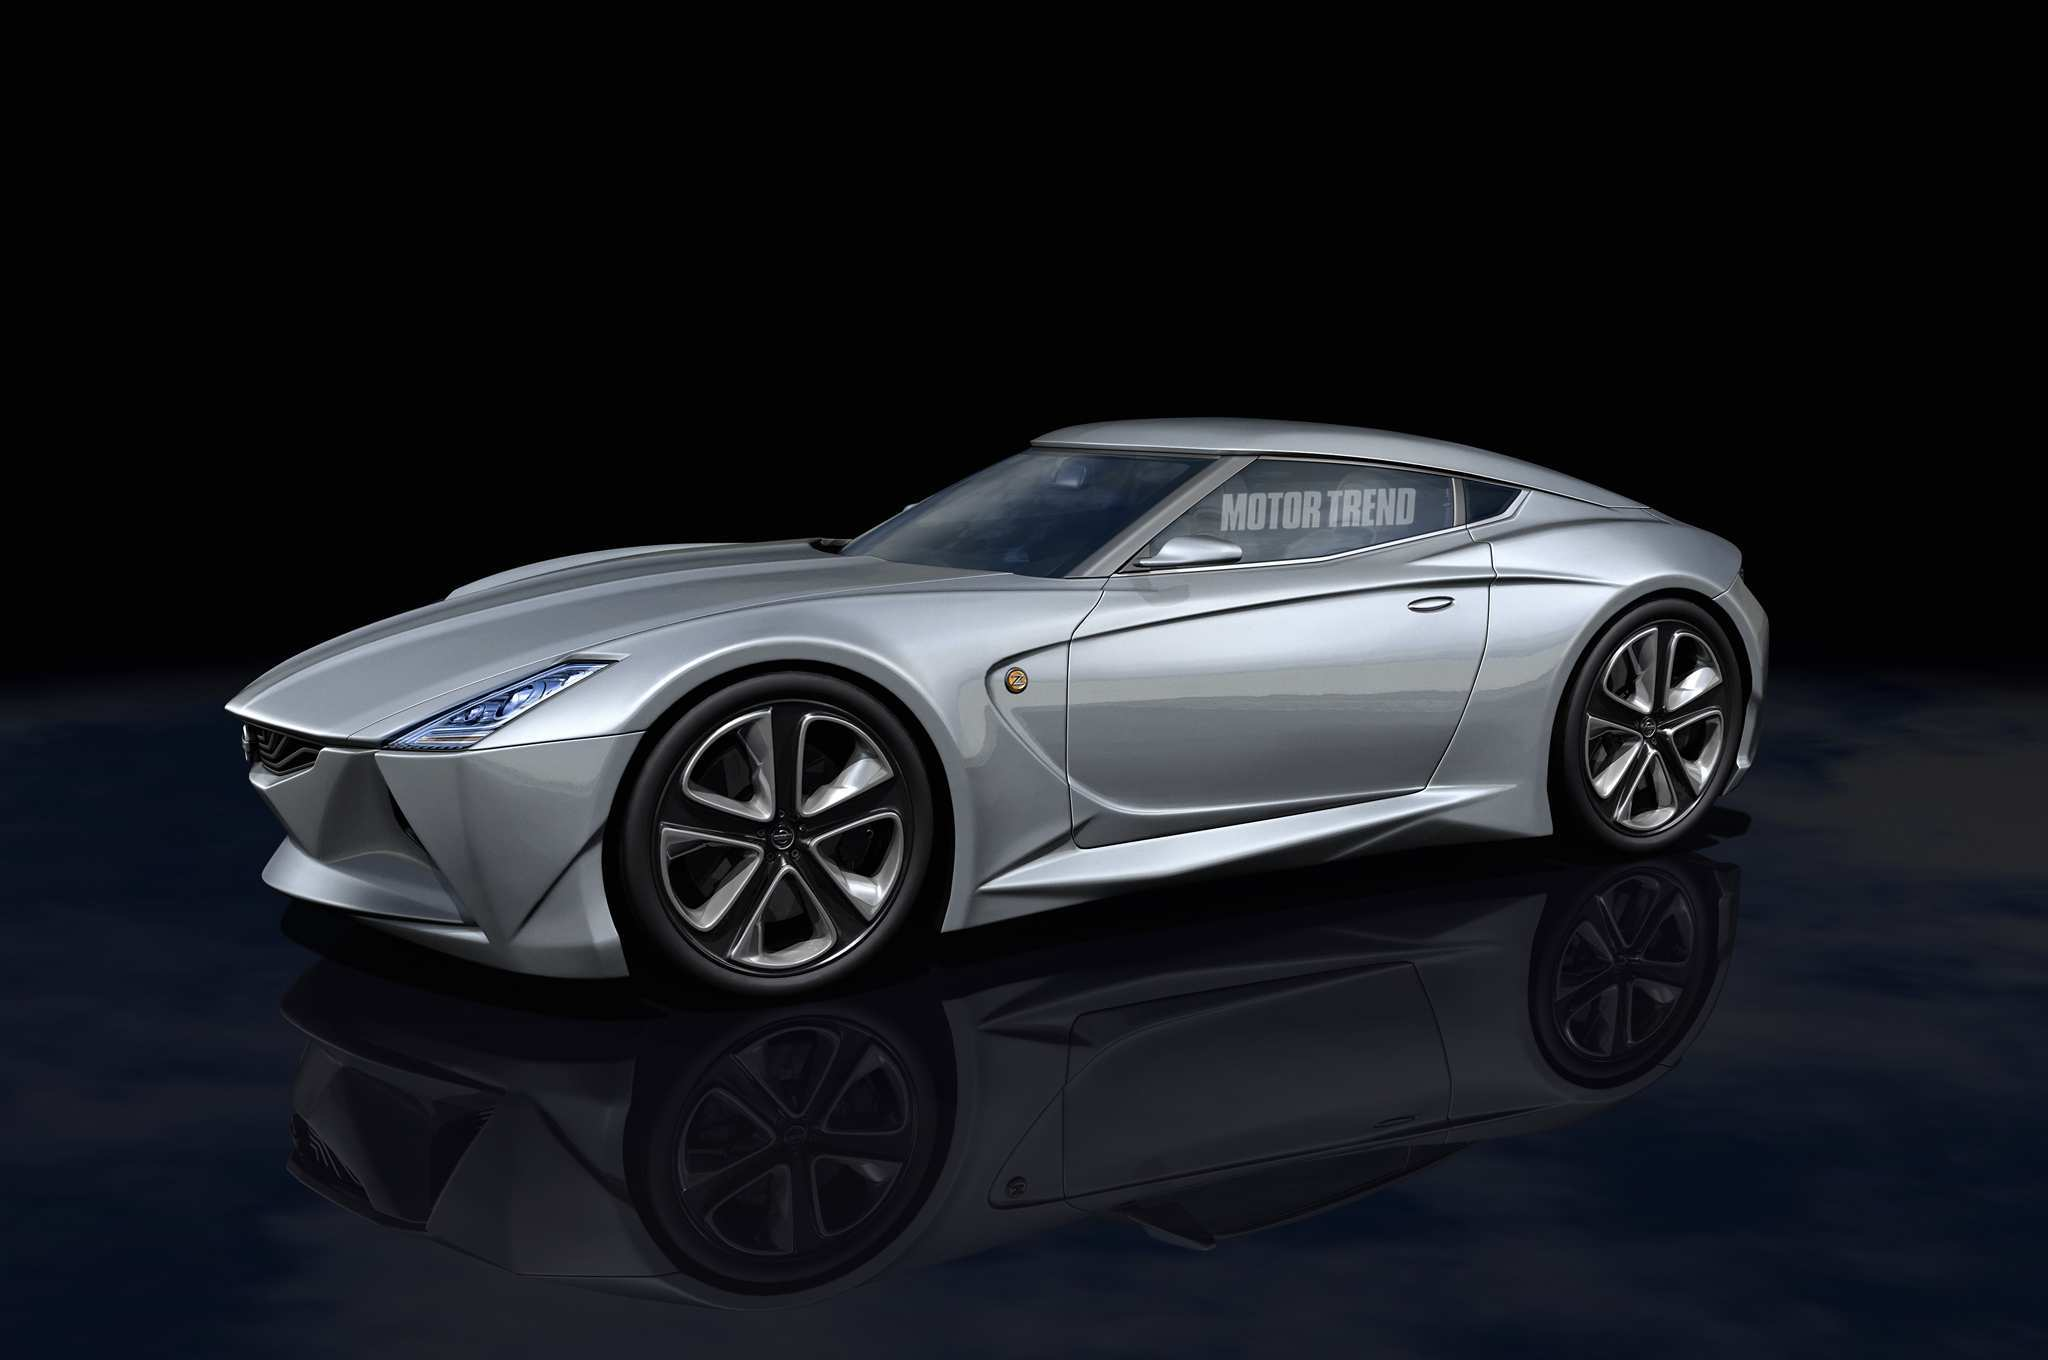 53 Concept of Z35 Nissan History with Z35 Nissan